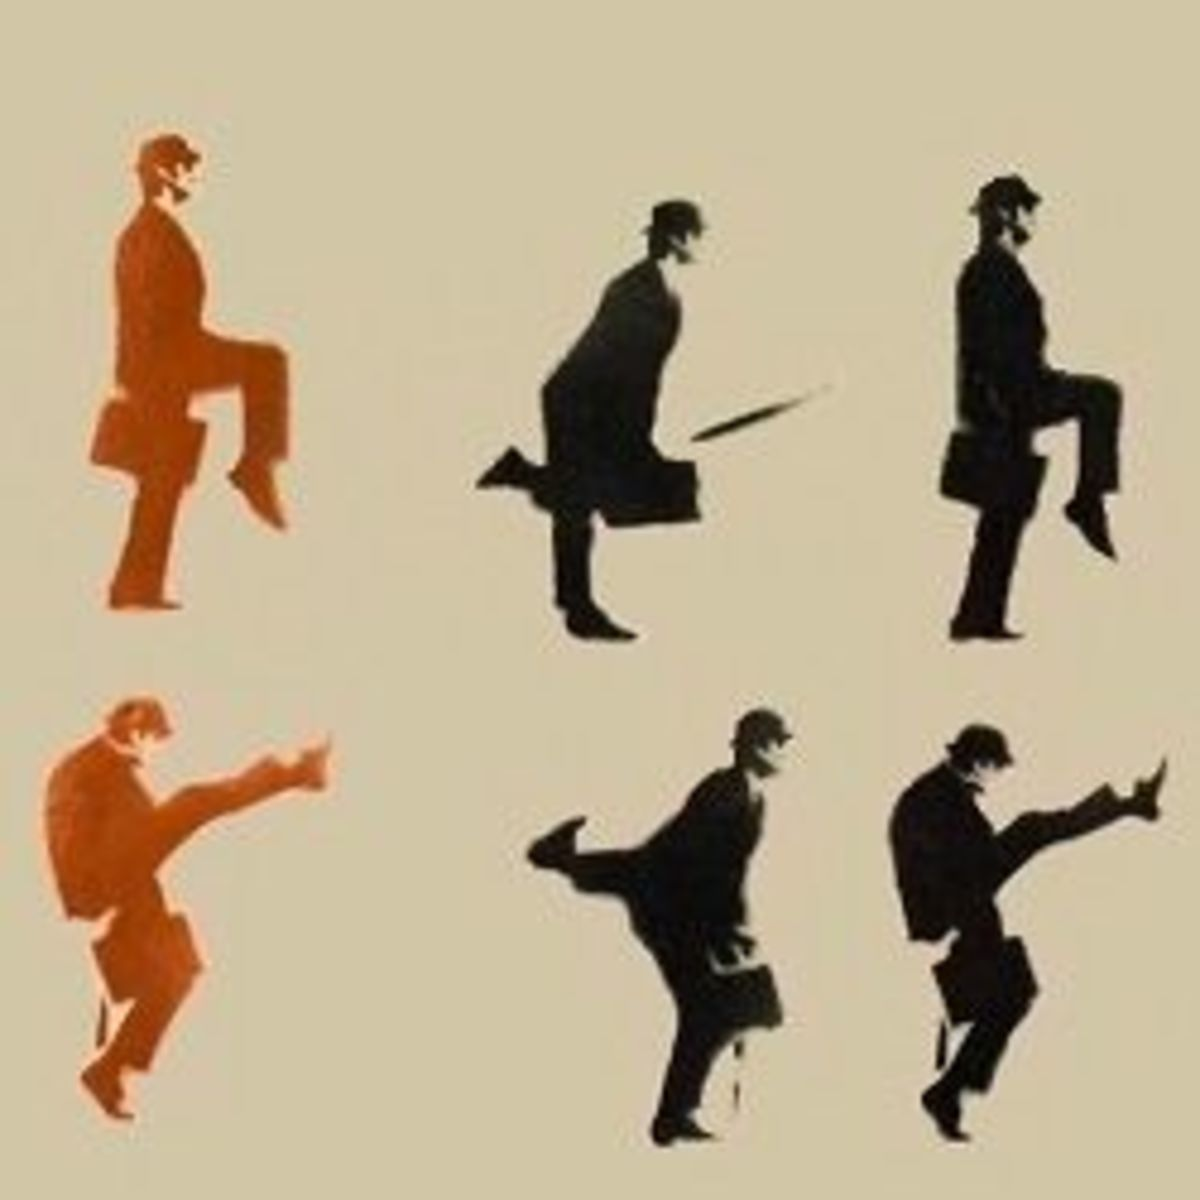 International Silly Walk Day